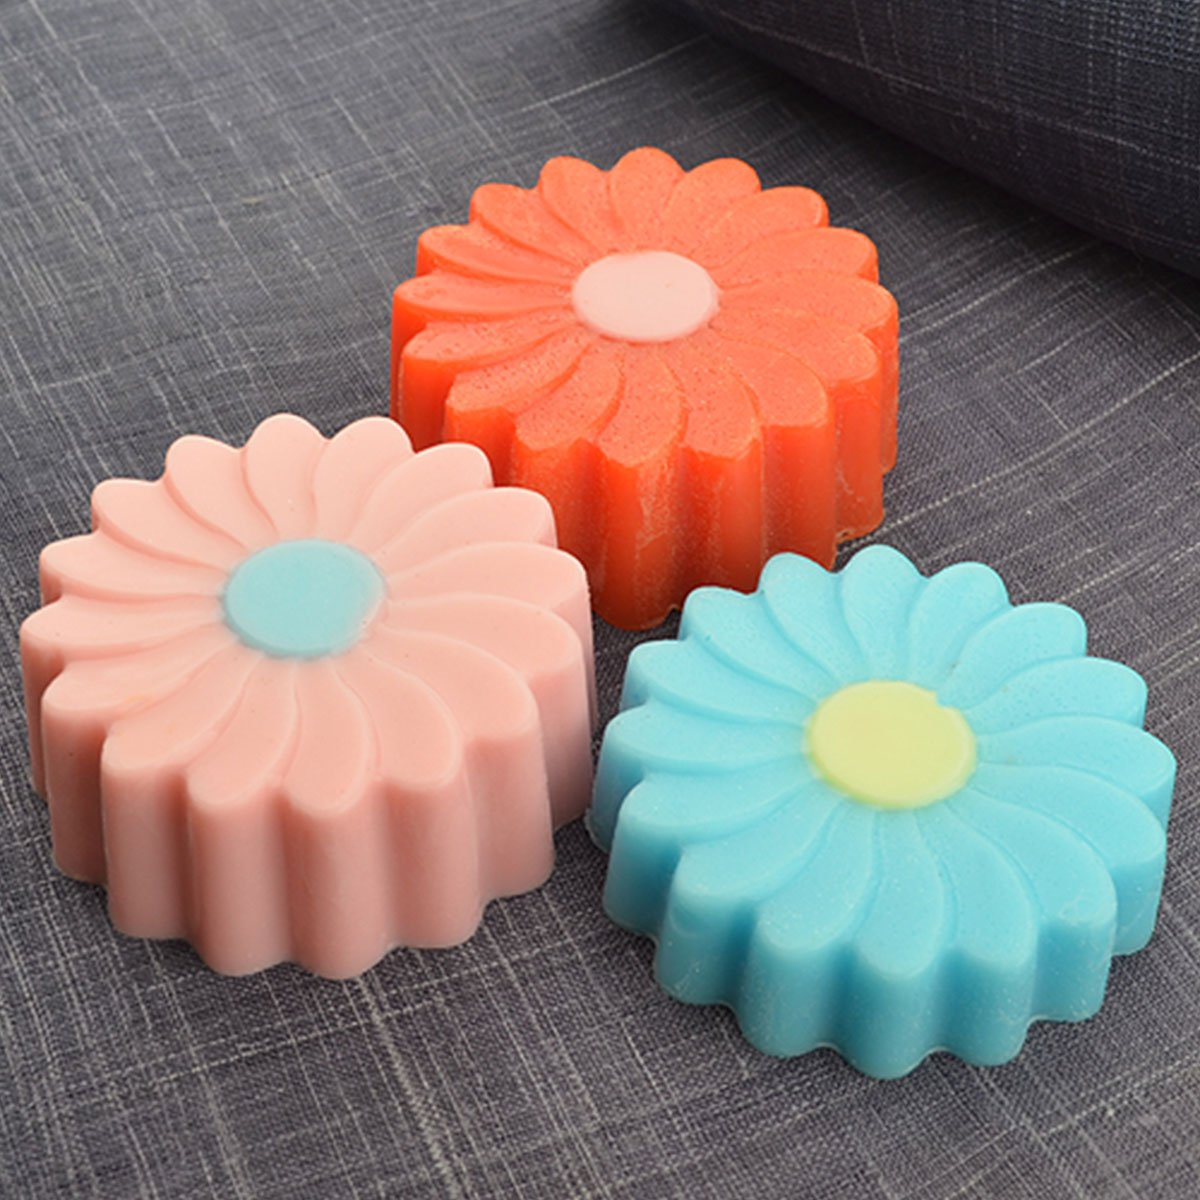 Chawoorim Flower Windmill Silicone Molds Soap Candle Making Home Baking